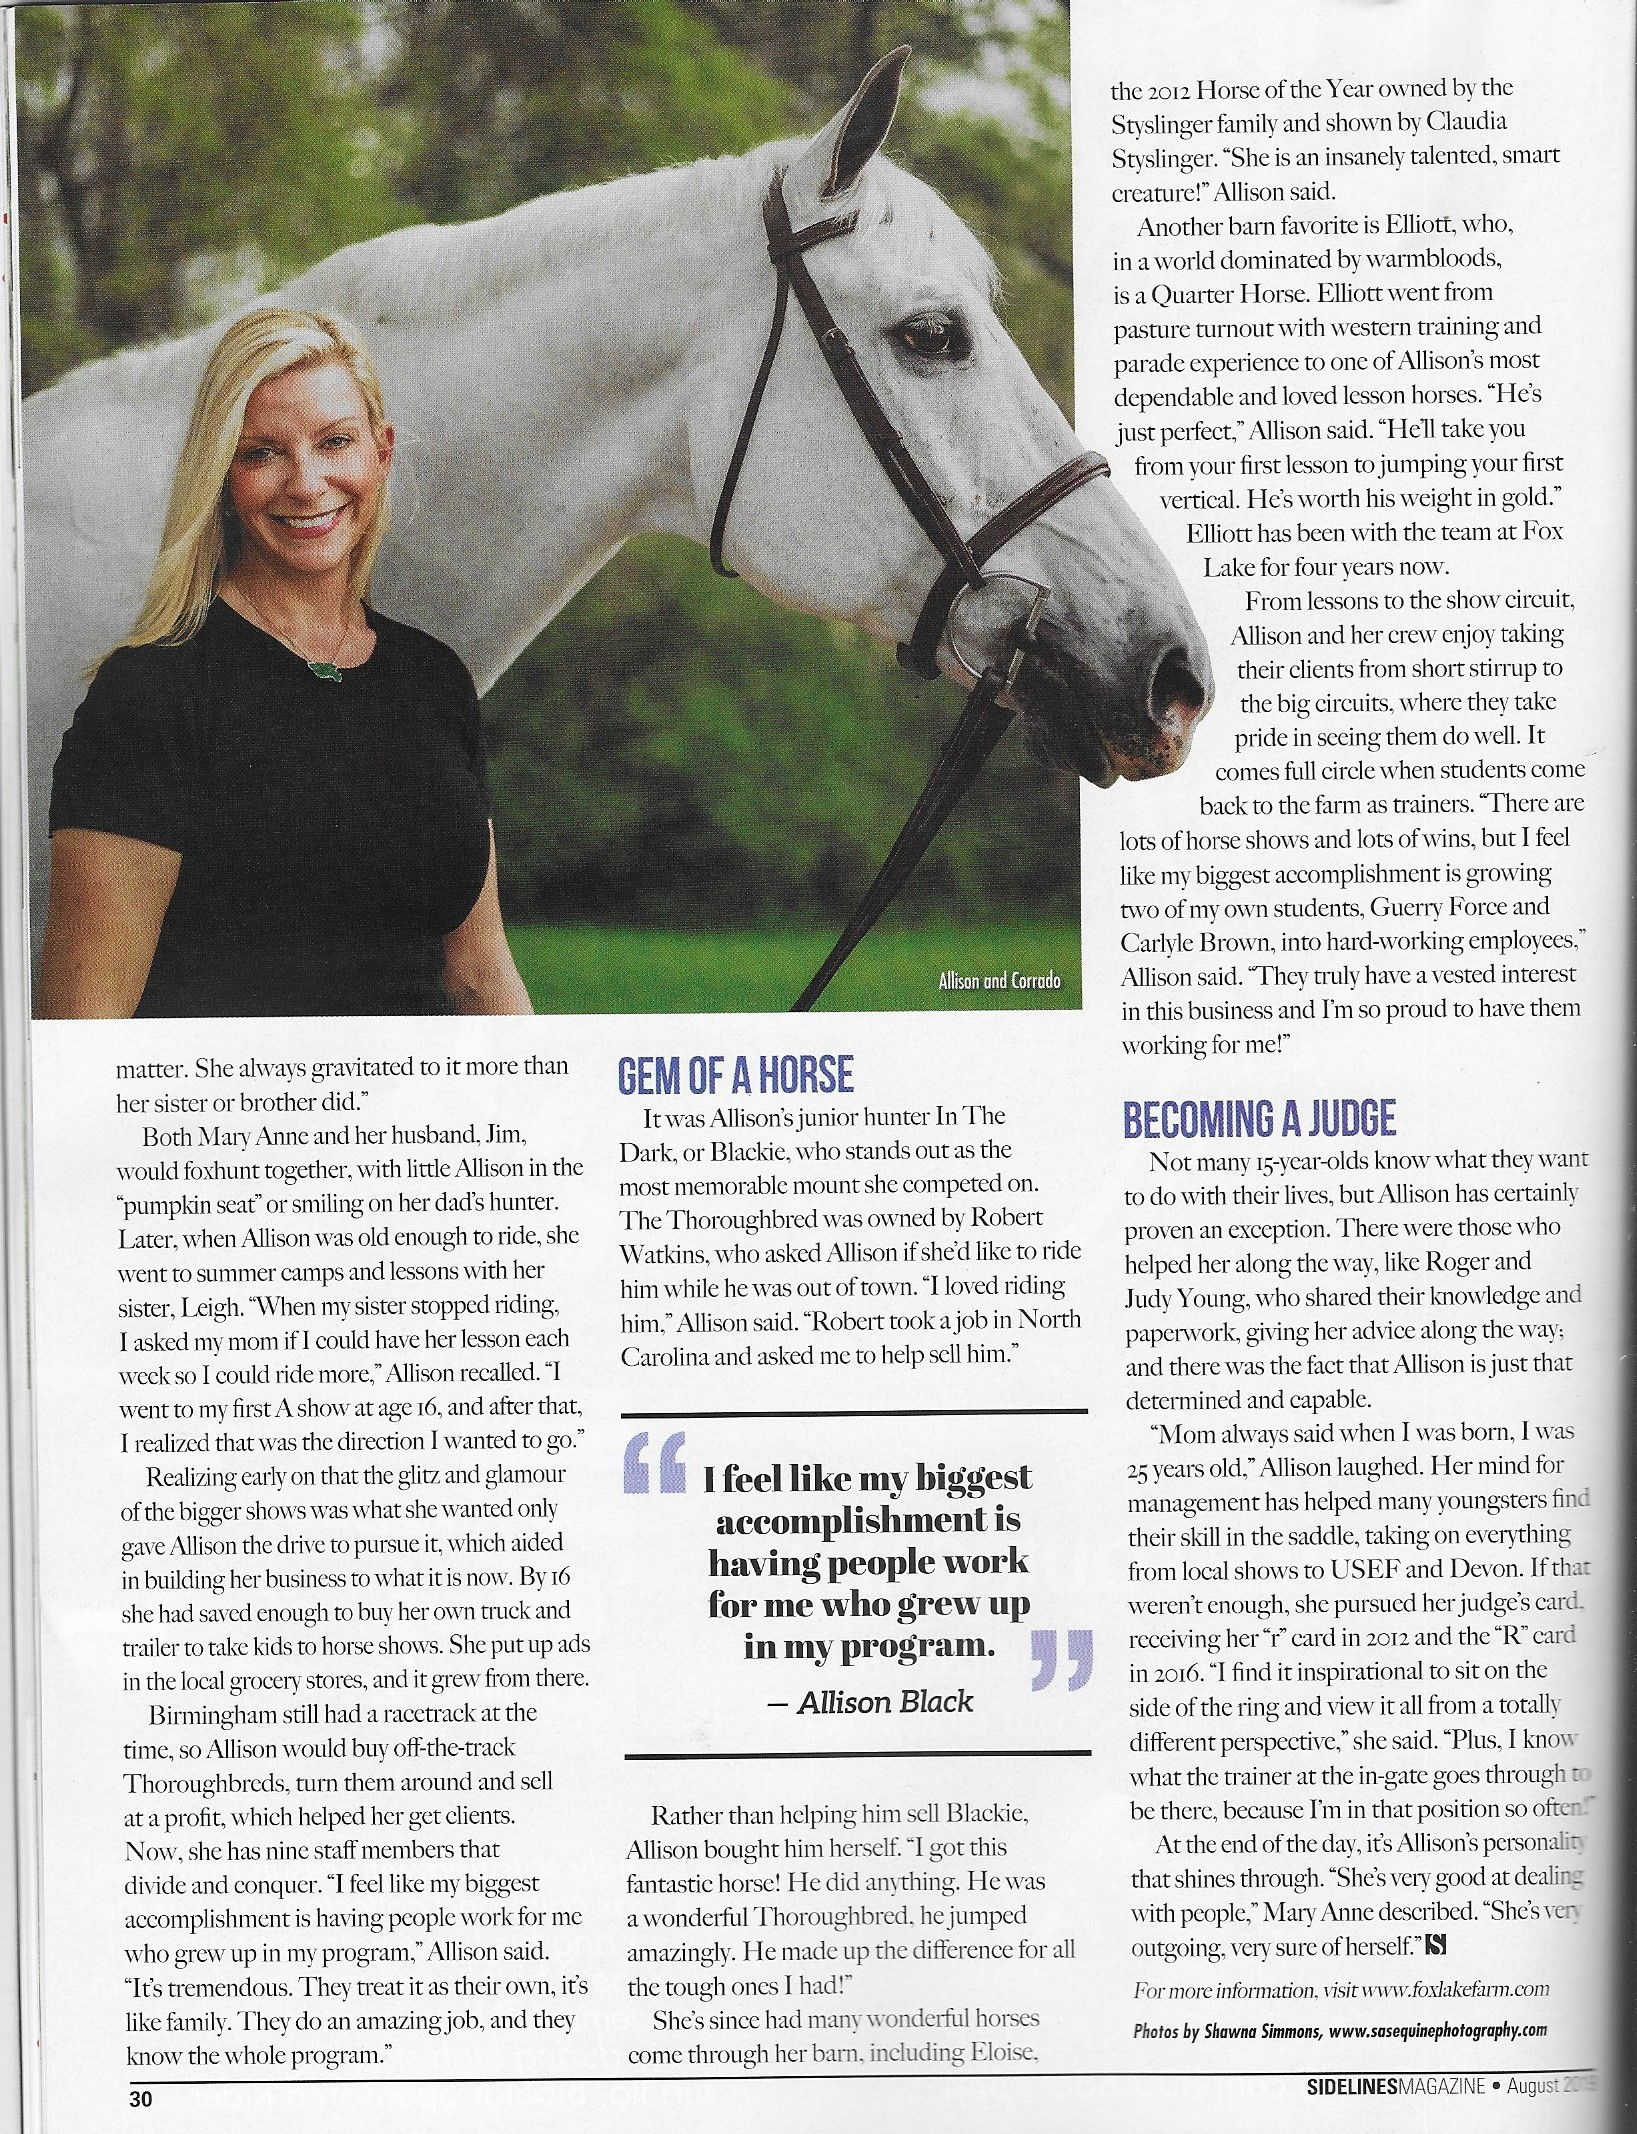 Allison Article Page 2.jpg